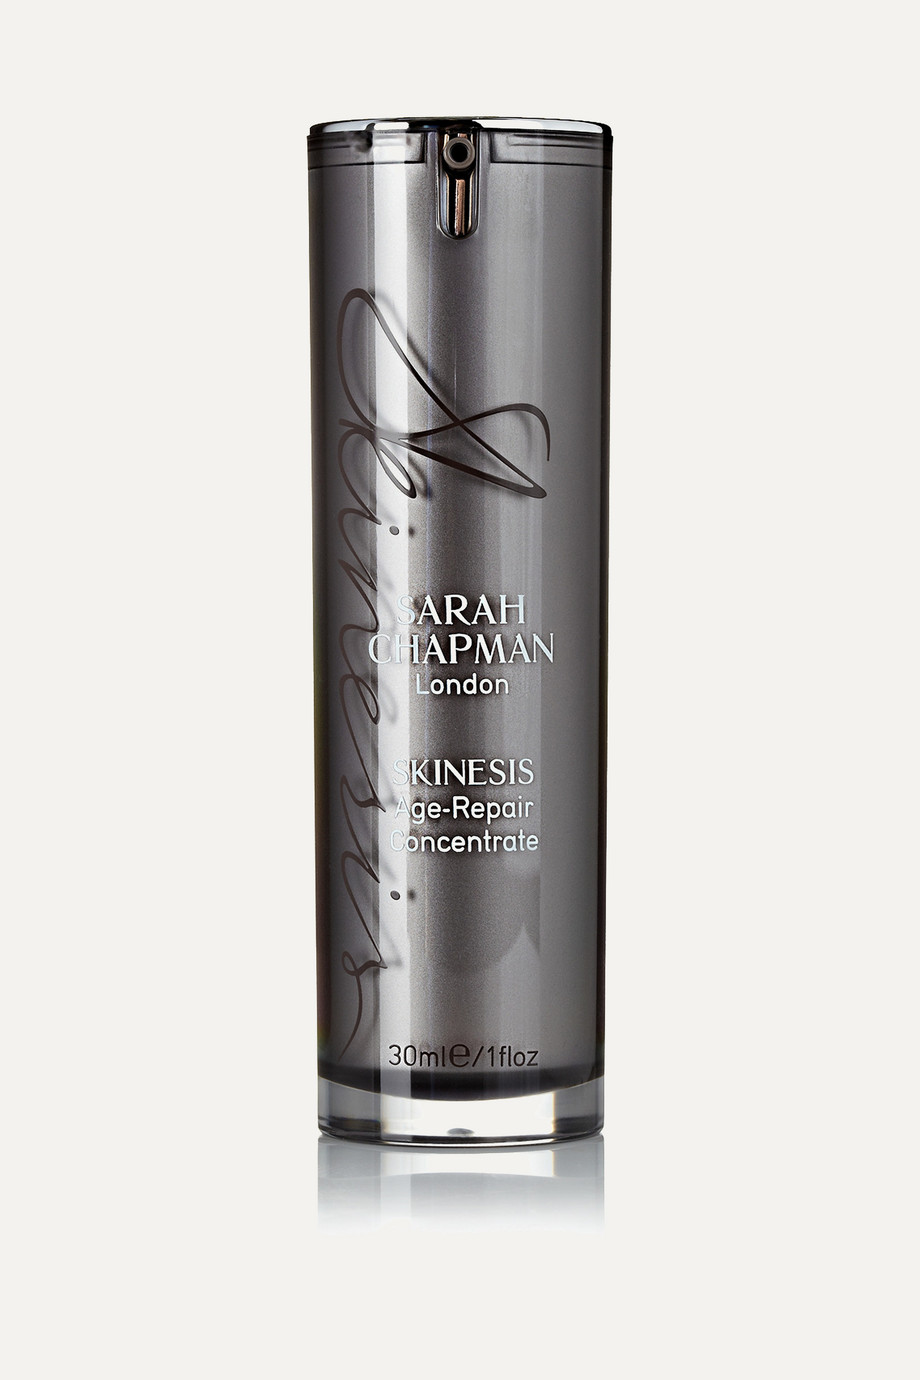 Skinesis Age-Repair Concentrate, 30ml, by Sarah Chapman